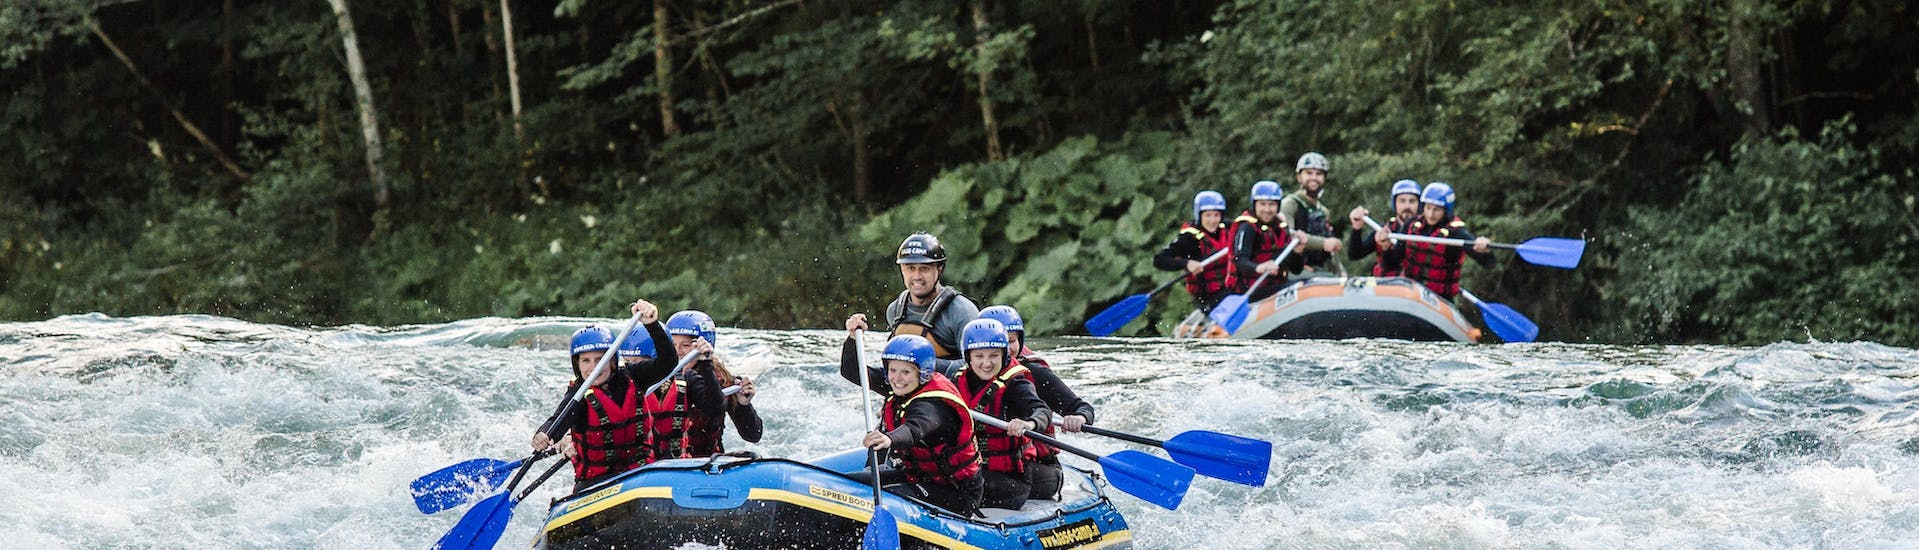 """During the Rafting """"7 Rapids"""" for Adventurers - Saalach organized by Base Camp, a group of rafters is paddling through the rapids of Saalach River near Lofer."""